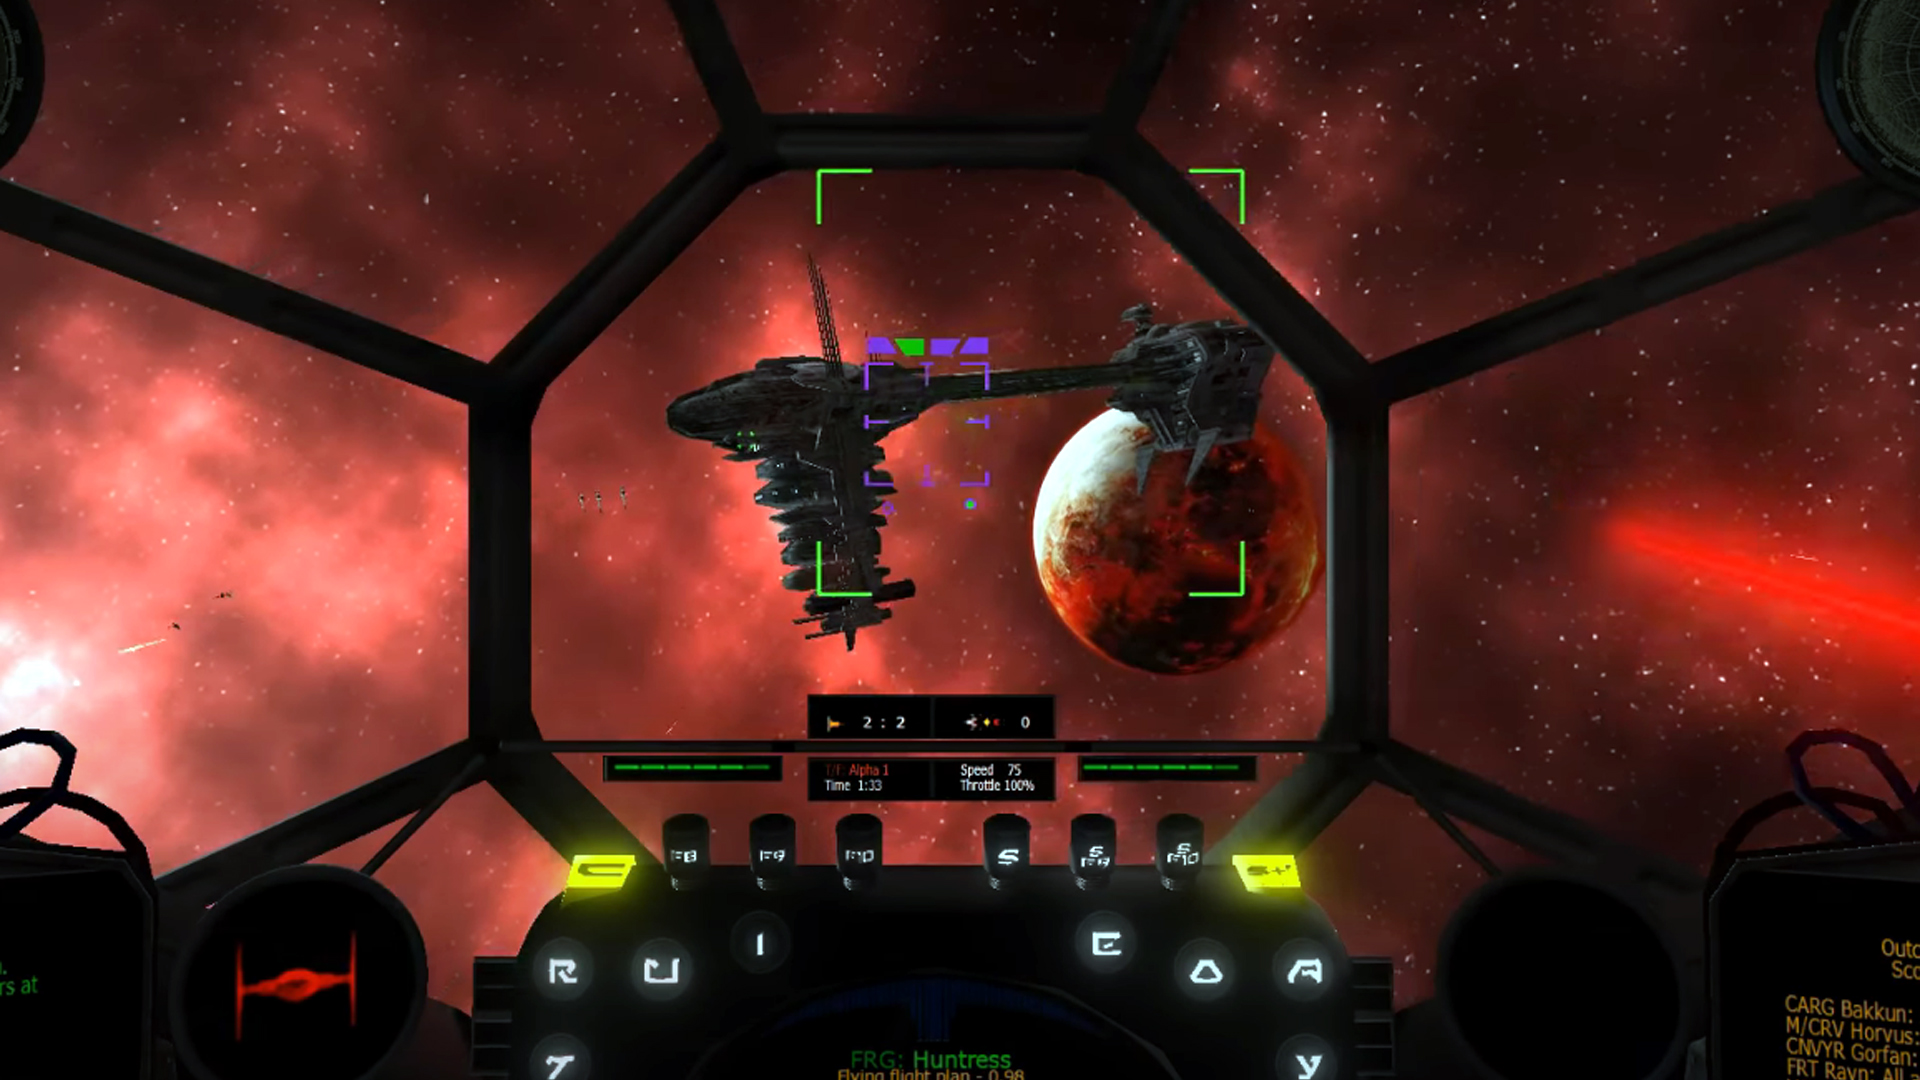 1994's TIE Fighter has been modded into 1999's X-Wing Alliance, spectacularly